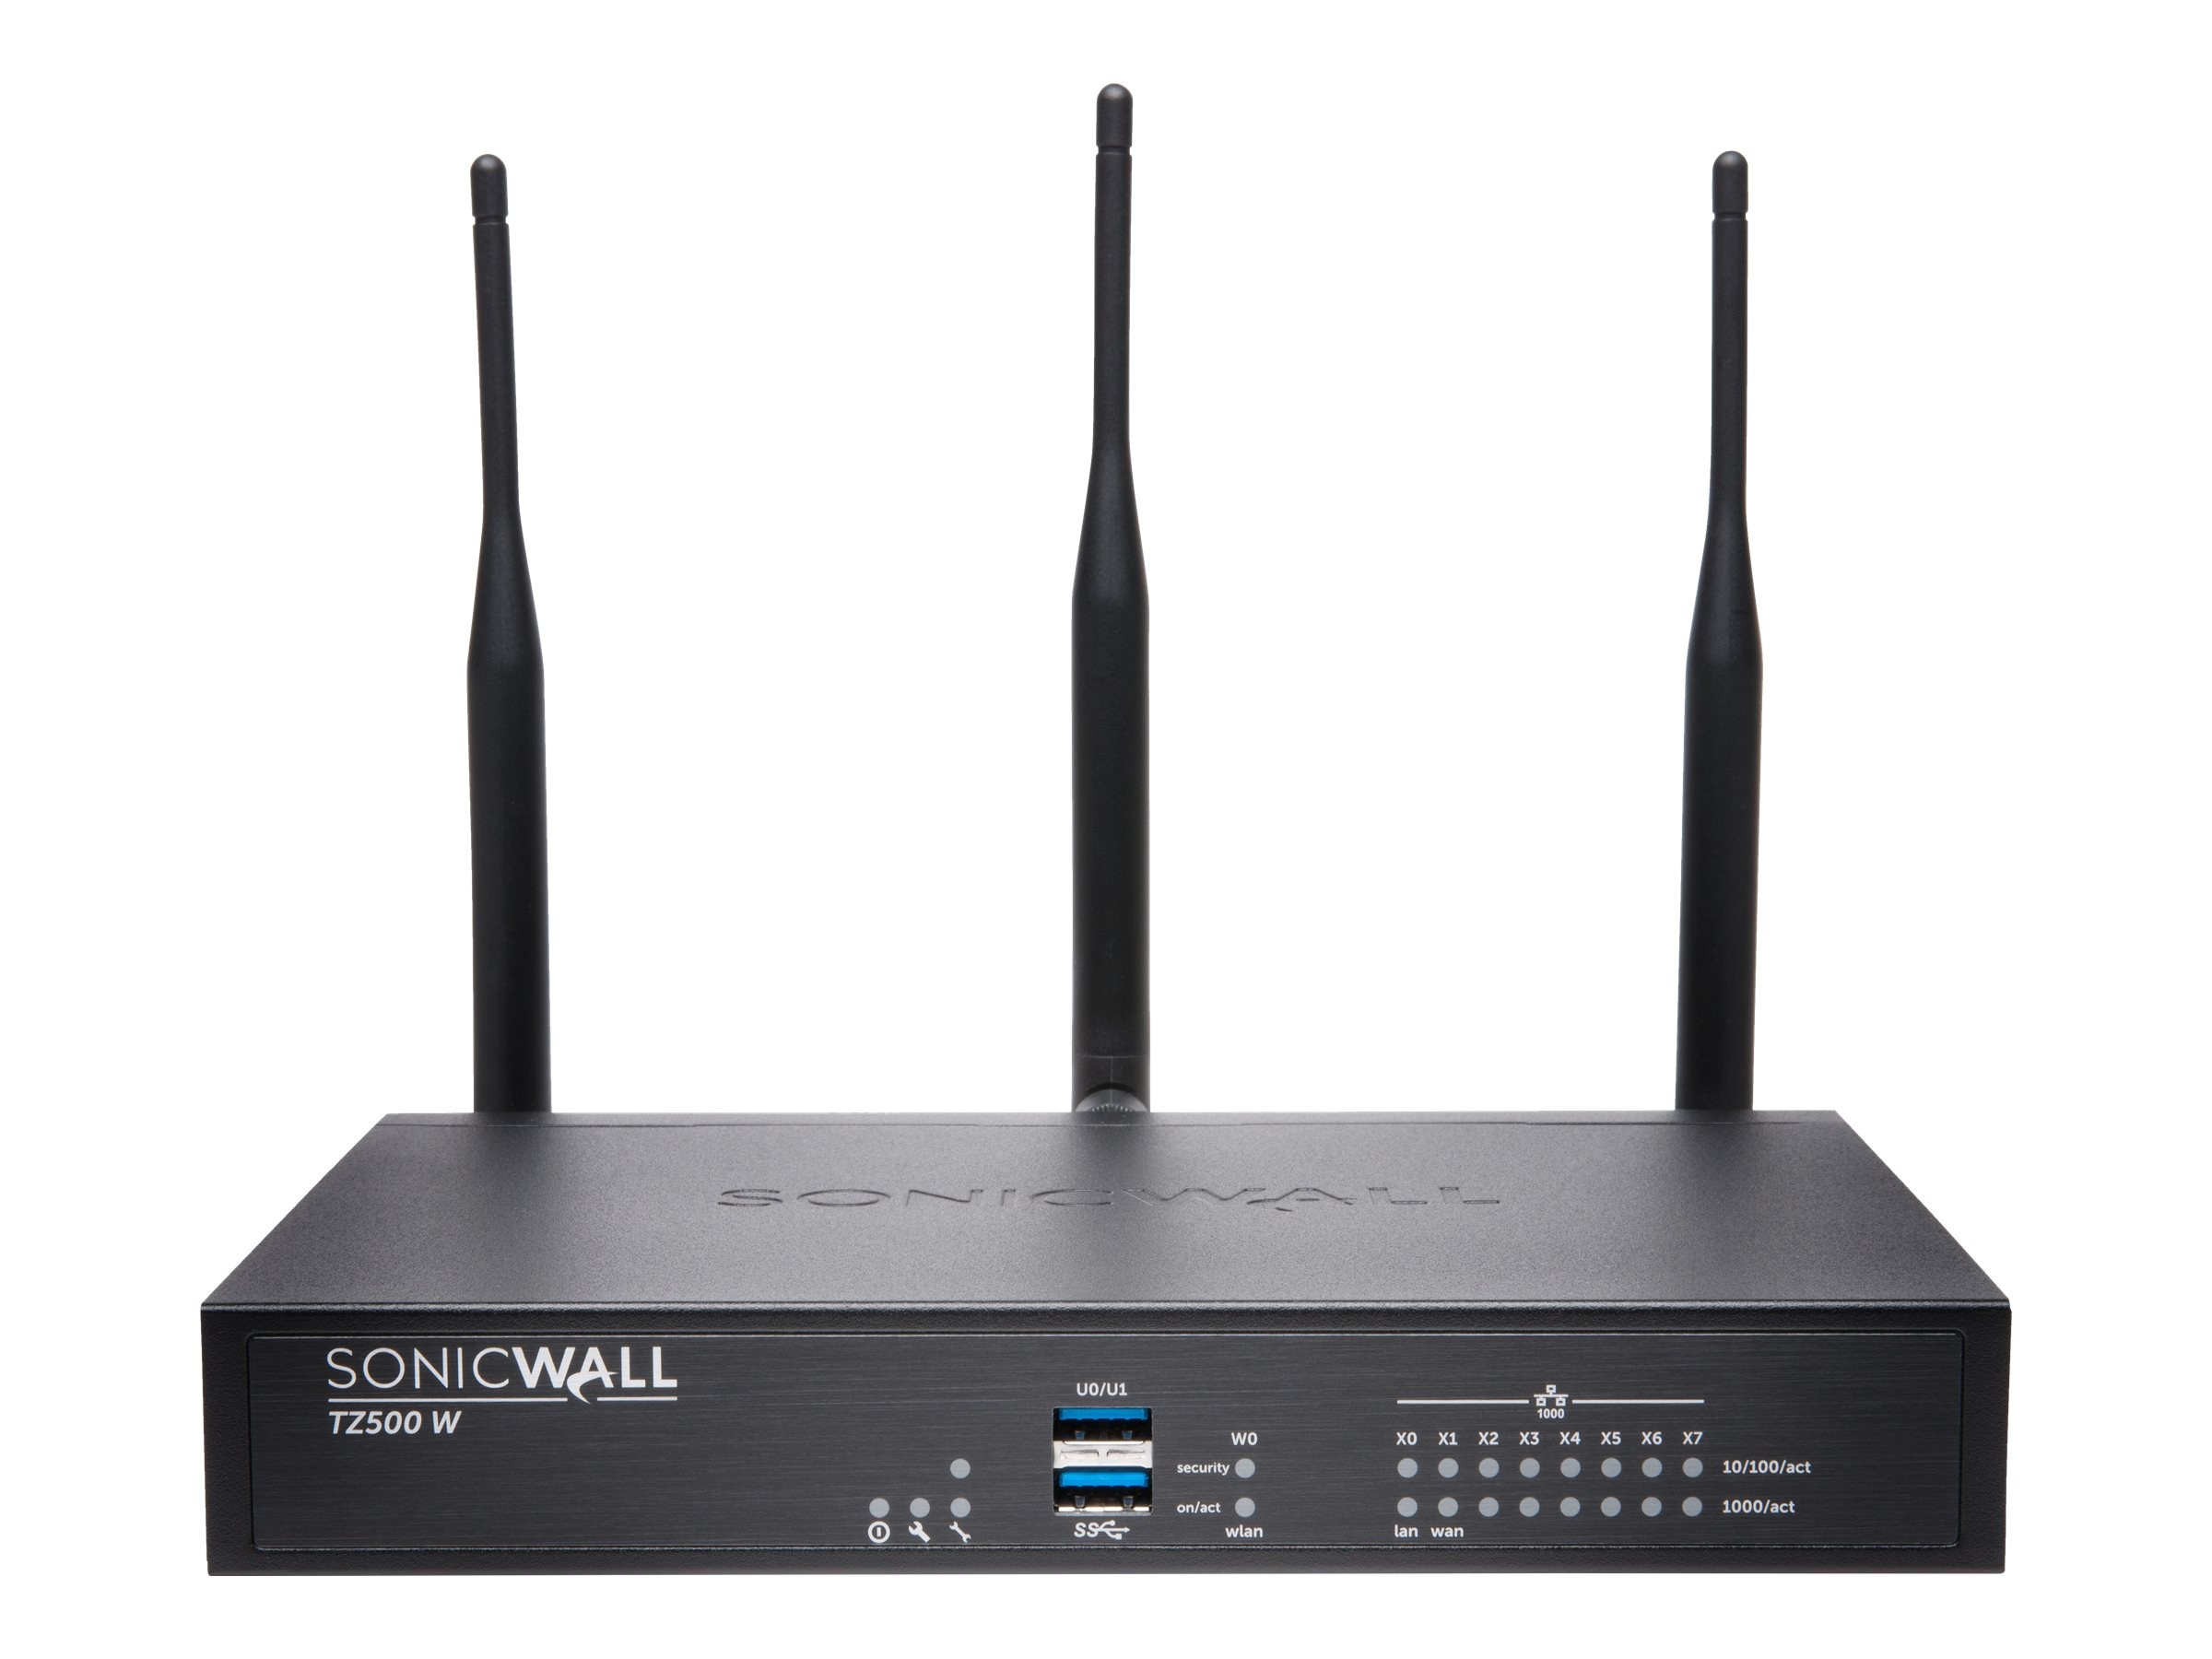 SonicWALL 01-SSC-0212 Image 2